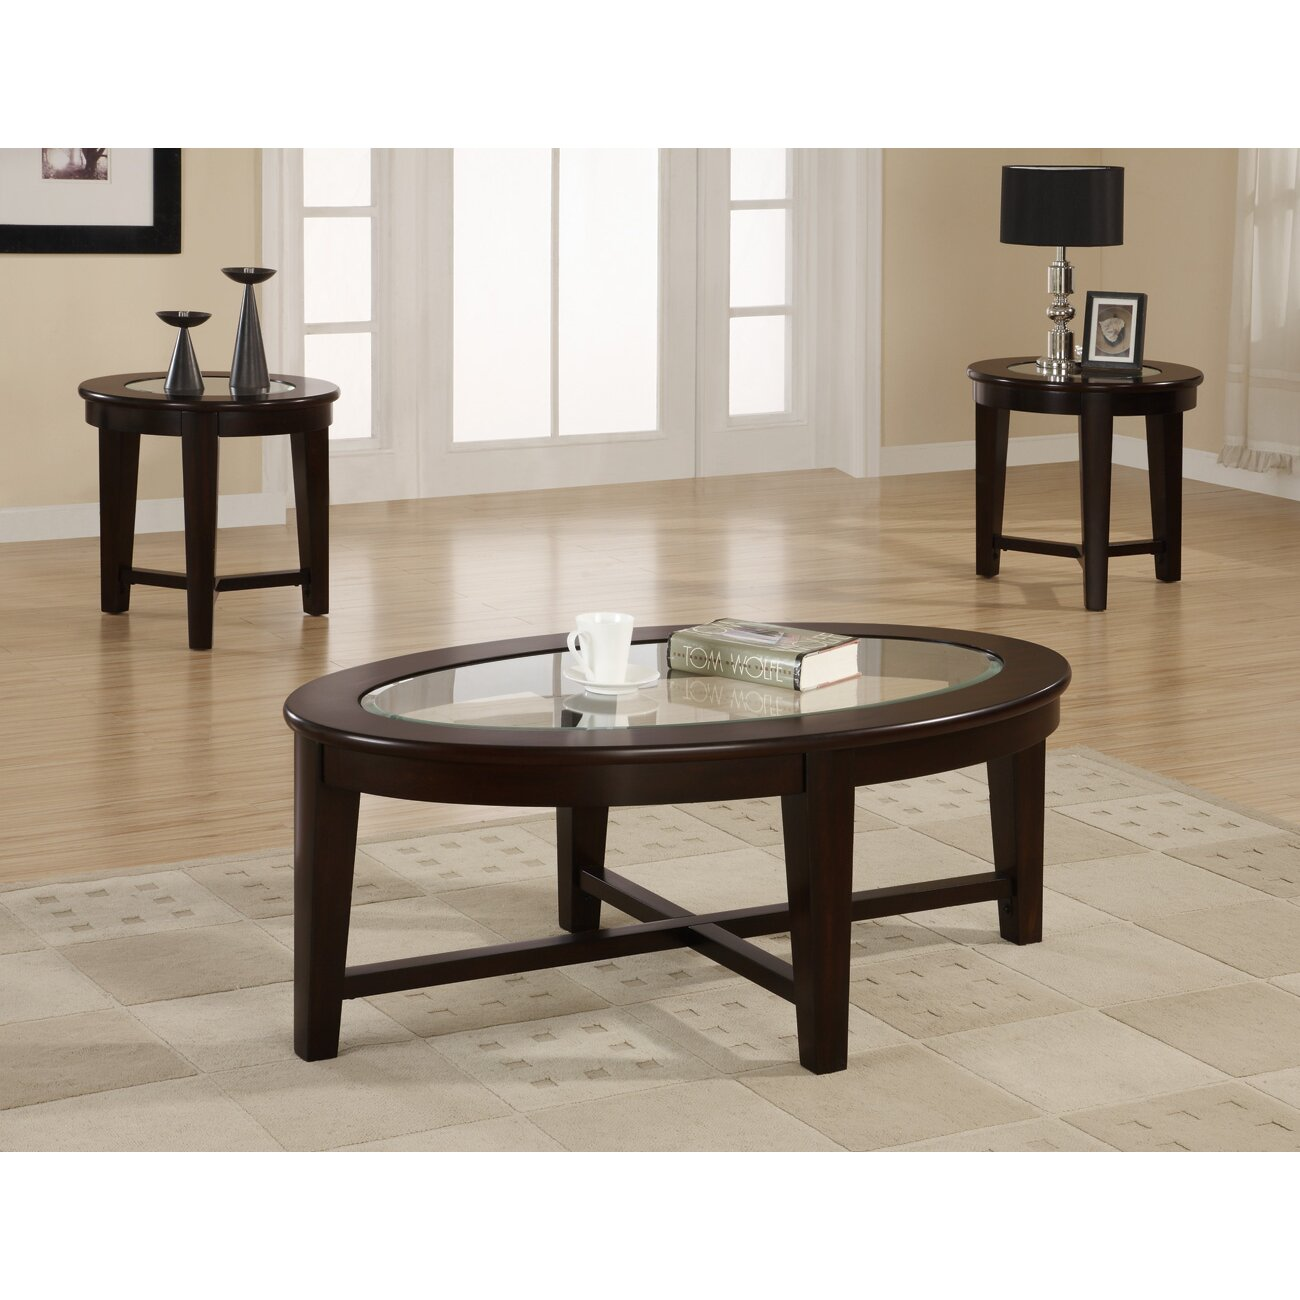 Veropeso 3 Piece Coffee Table Set: Amalga 3 Piece Coffee Table Set